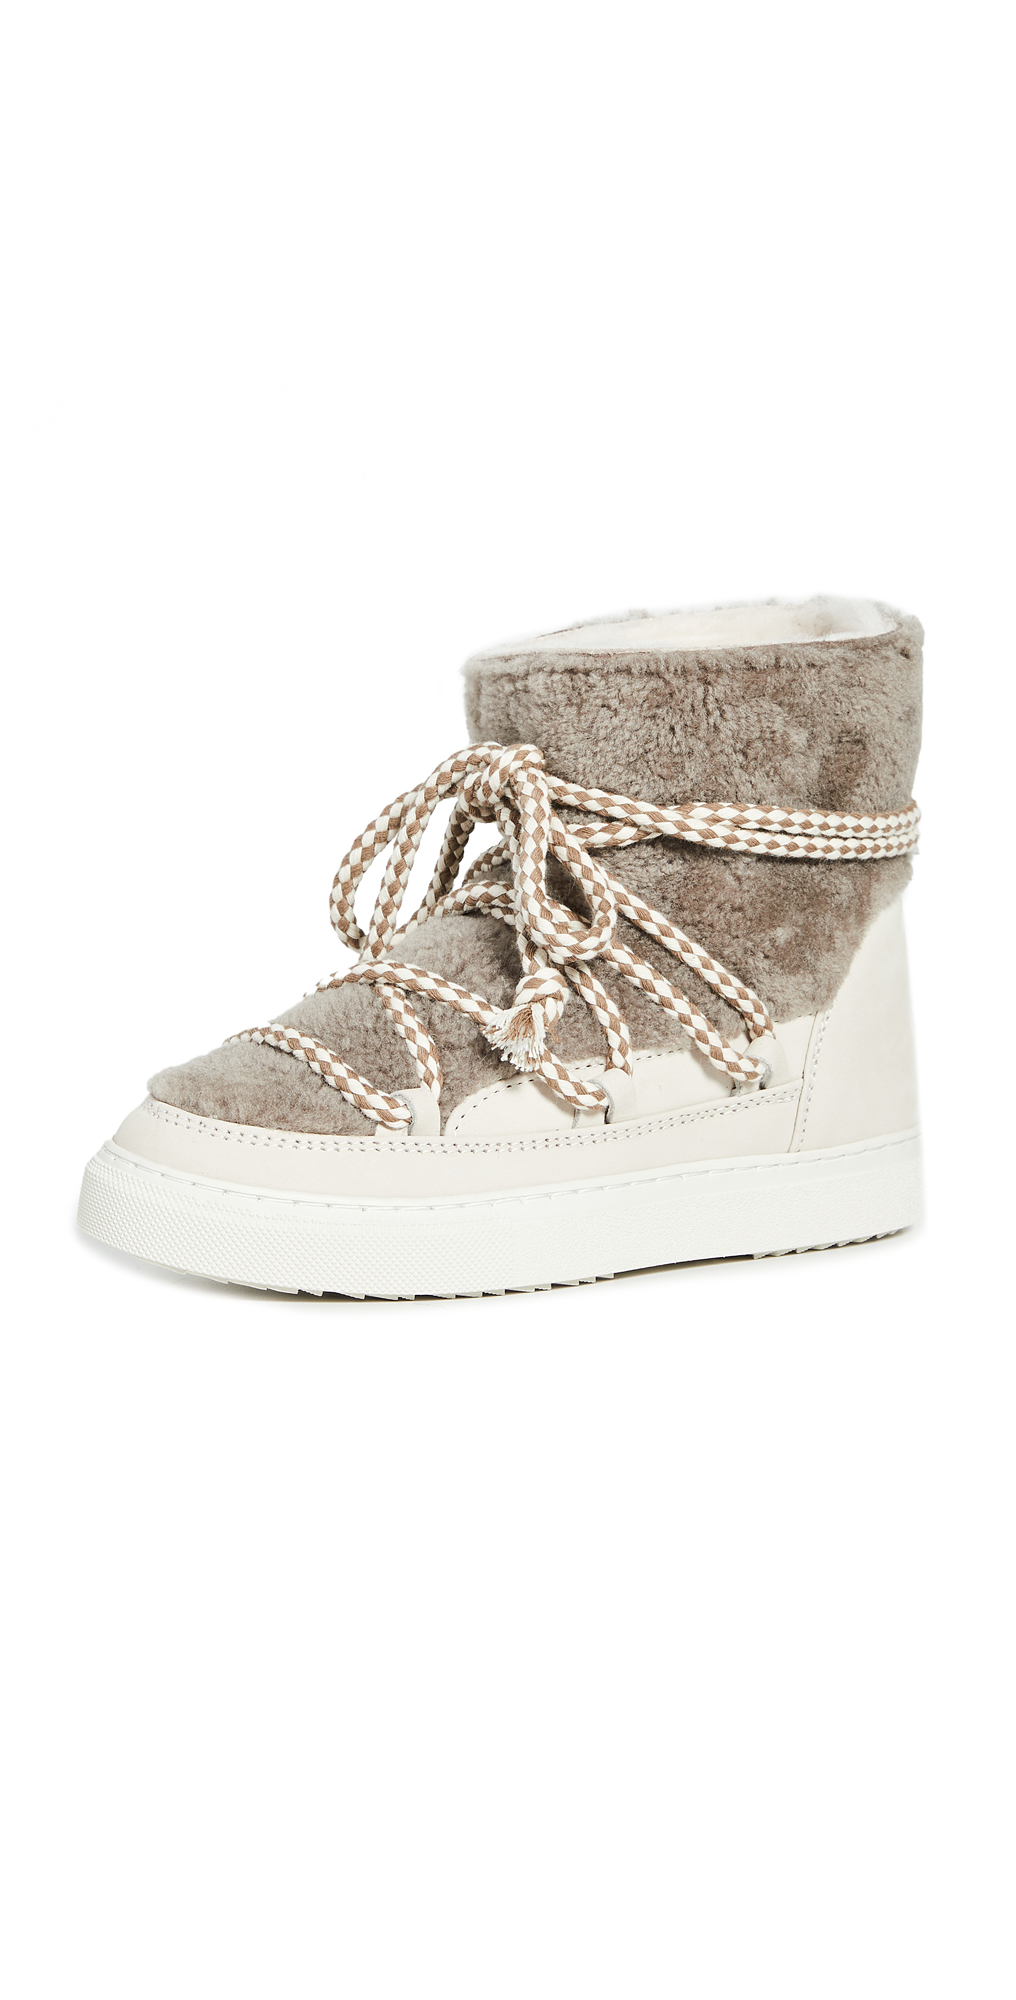 Curly Shearling Sneakers